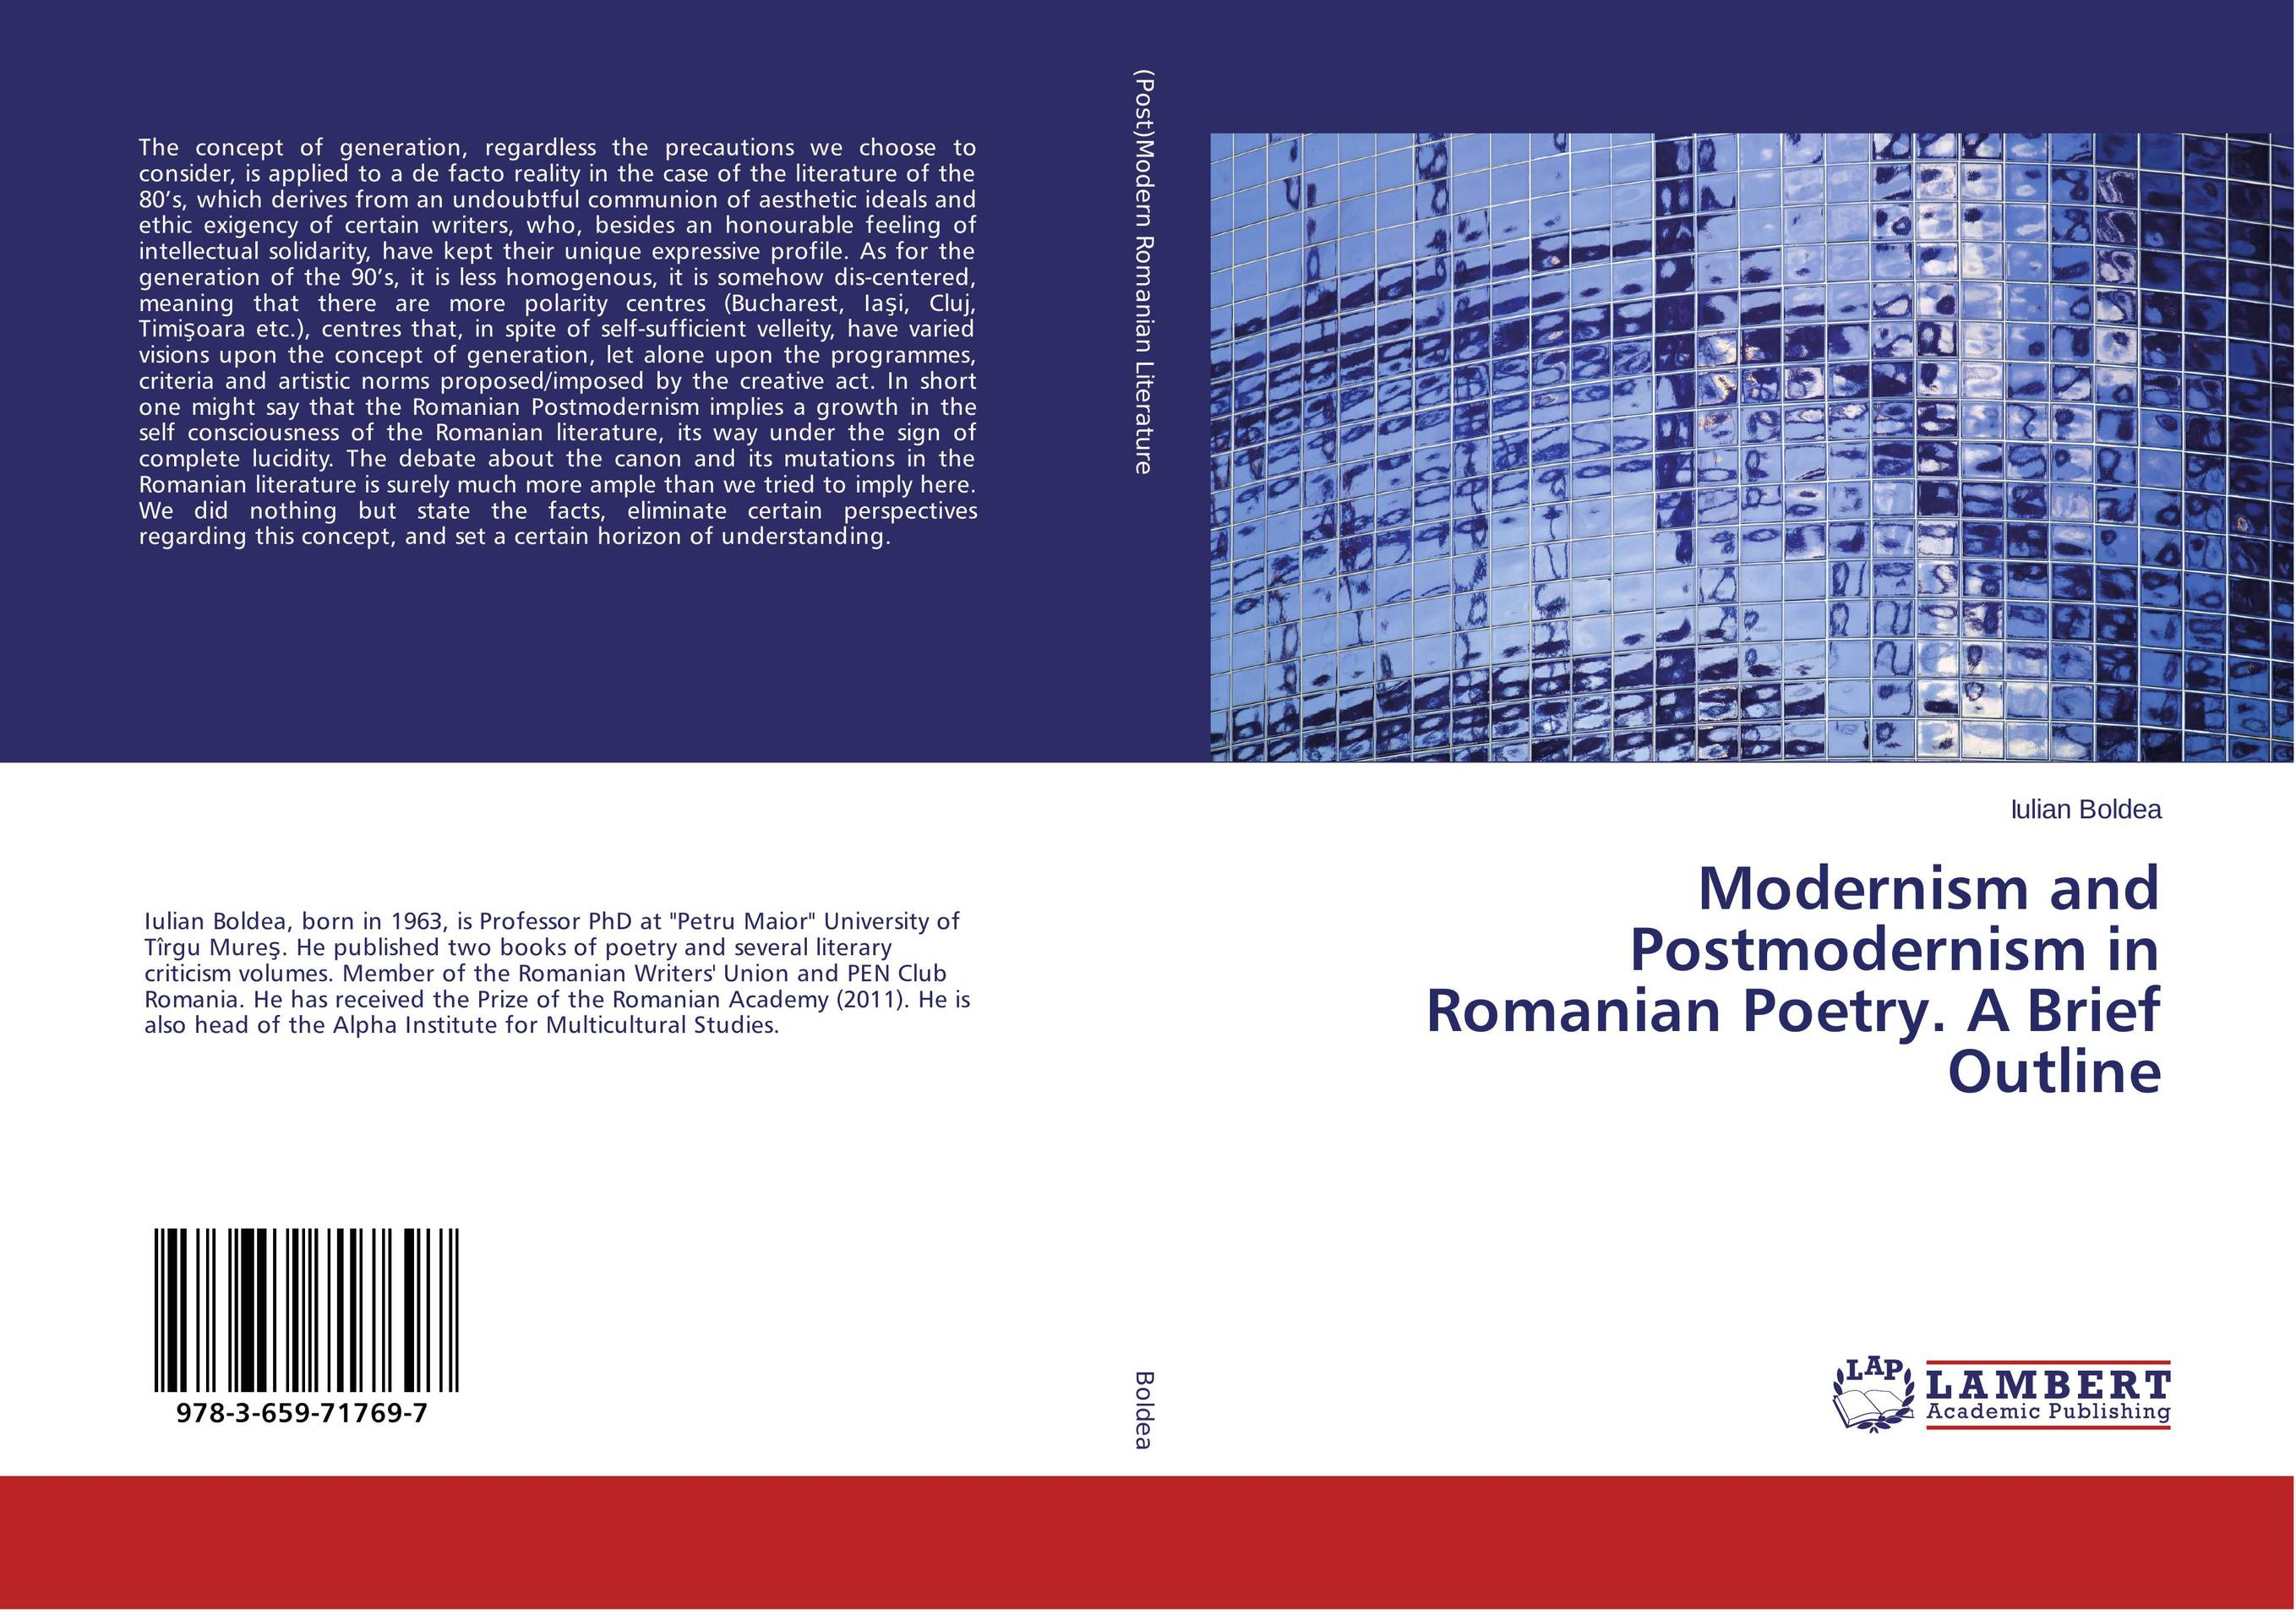 Modernism and Postmodernism in Romanian Poetry. A Brief Outline literature and its writers a compact introduction to fiction poetry and drama